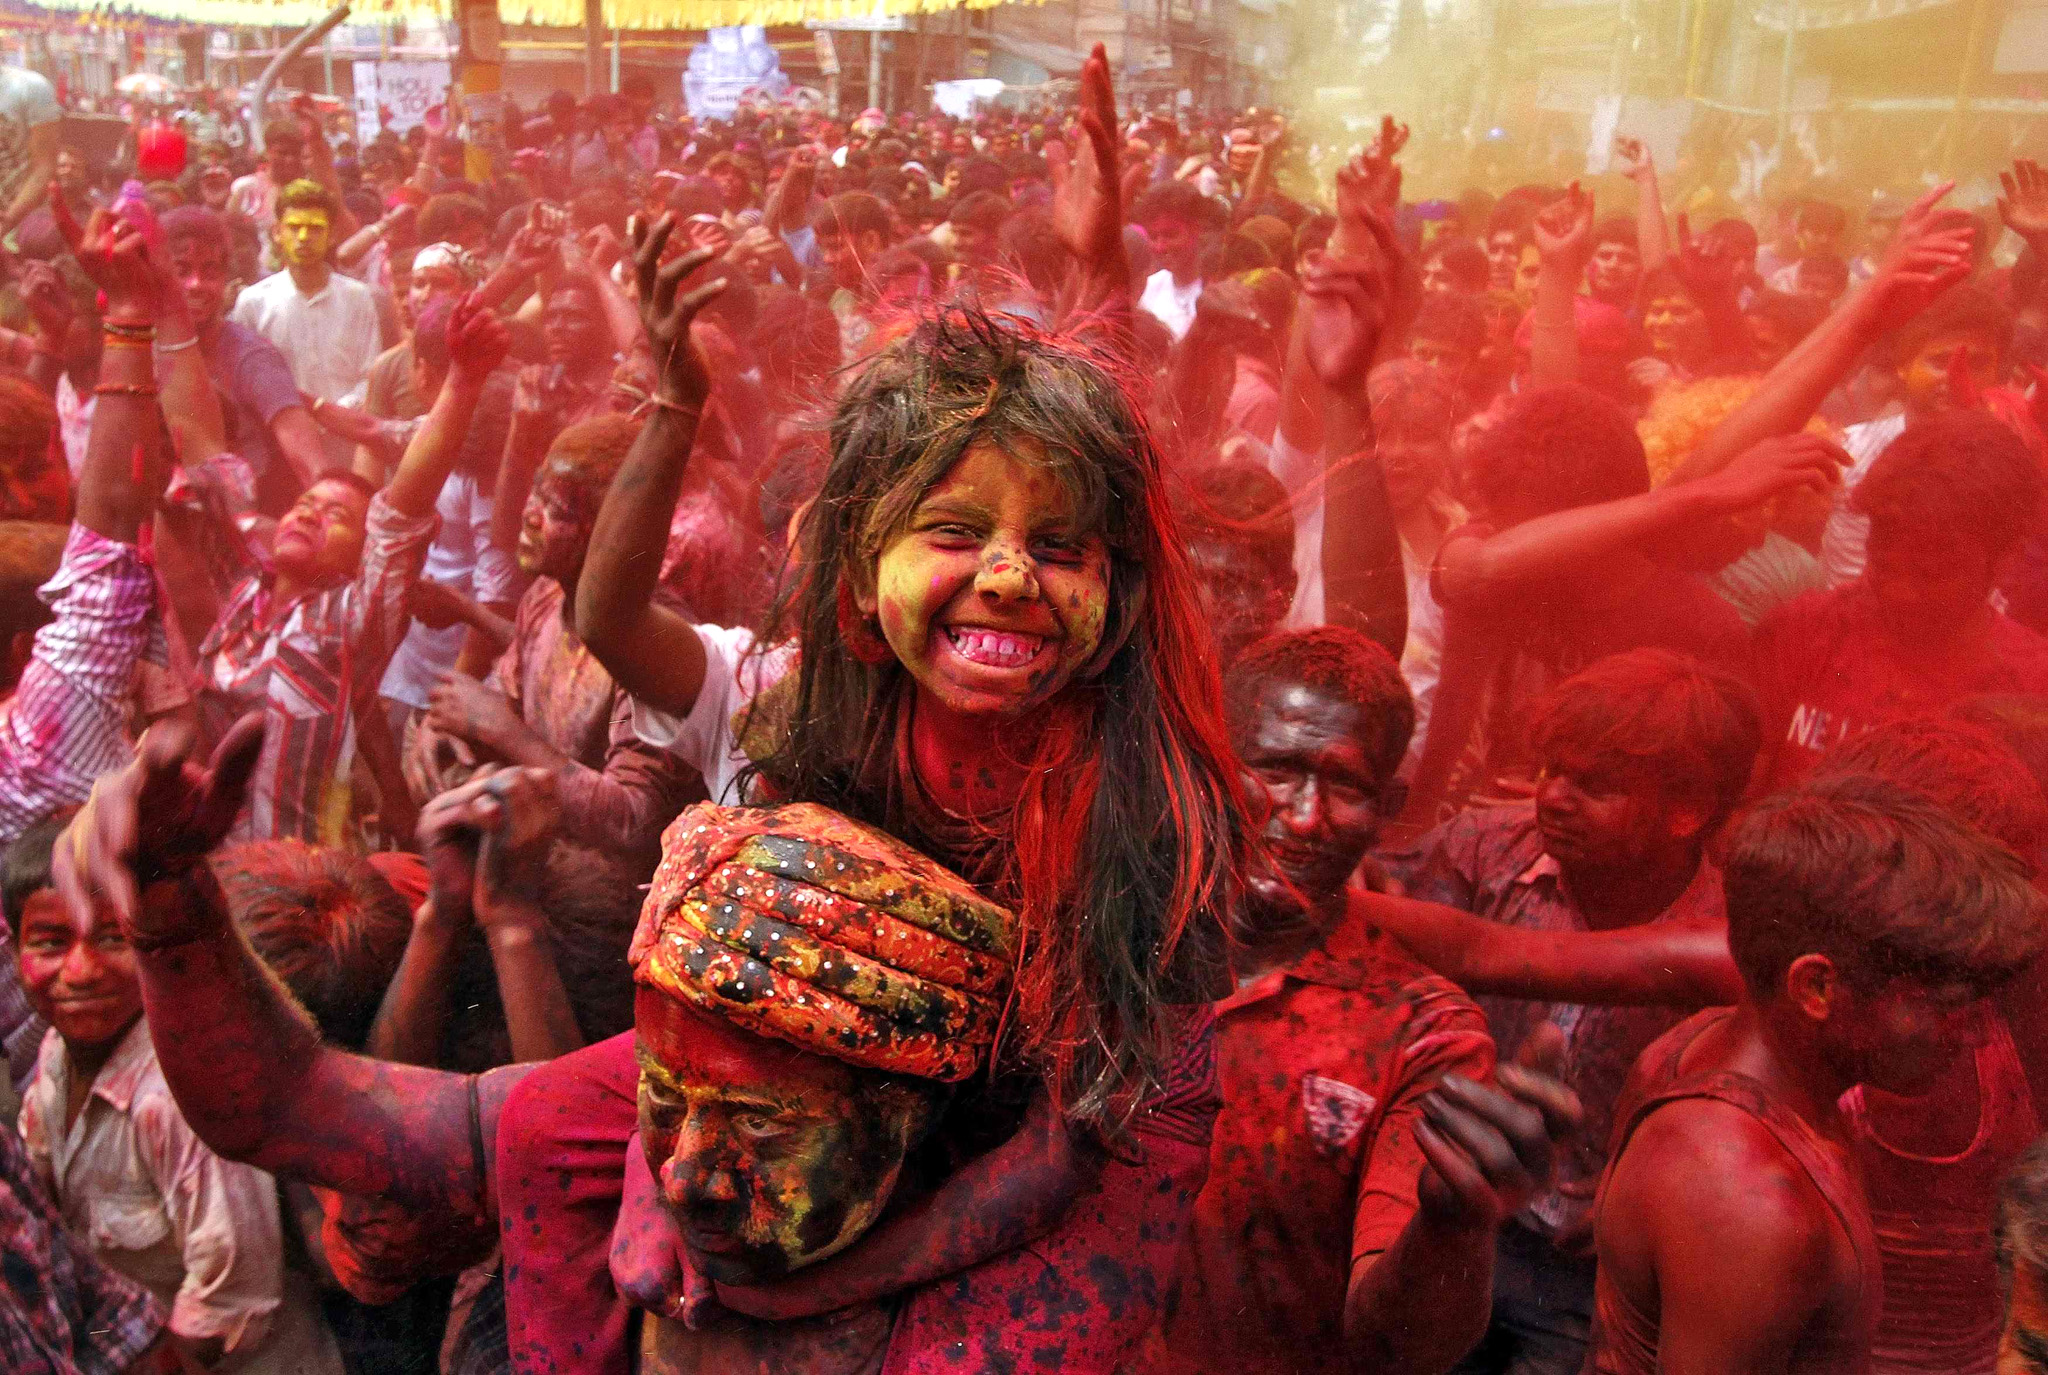 A girl sits on her father's shoulders cheers as she and others daubed in colours dance while celebrating Holi in Guwahati...A girl sits on her father's shoulders cheers as she and others daubed in colours dance while celebrating Holi in the northeastern Indian city of Guwahati March 17, 2014. Holi, also known as the Festival of Colours, heralds the beginning of spring and is celebrated all over India. REUTERS/Utpal Baruah